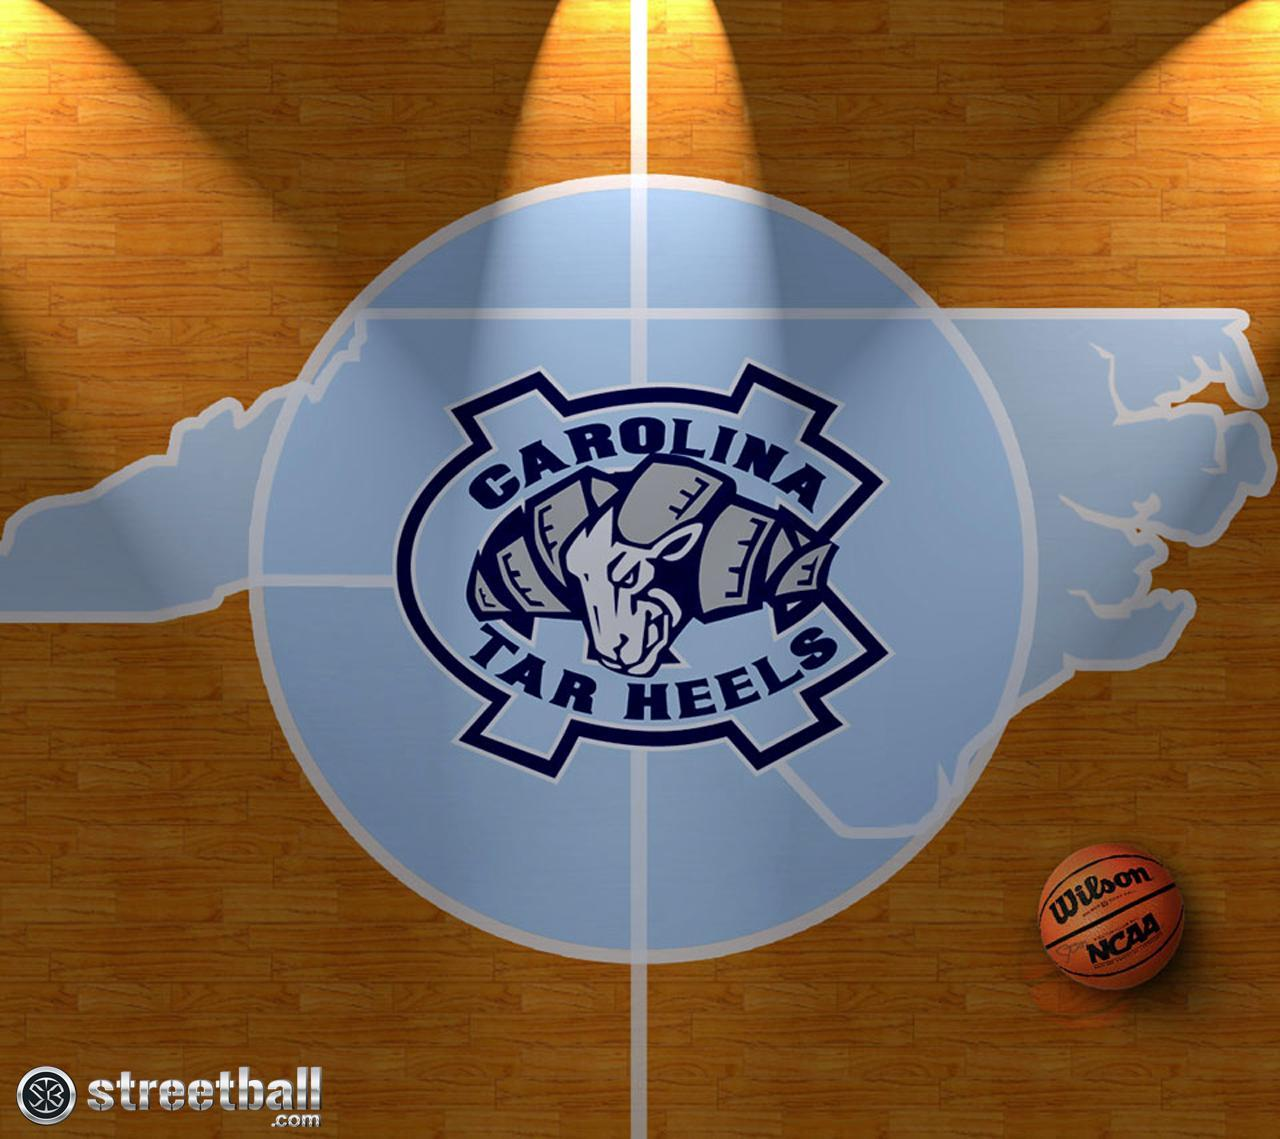 UNC Tar Heels Live Wallpapers Android Apps On Google Play 1920